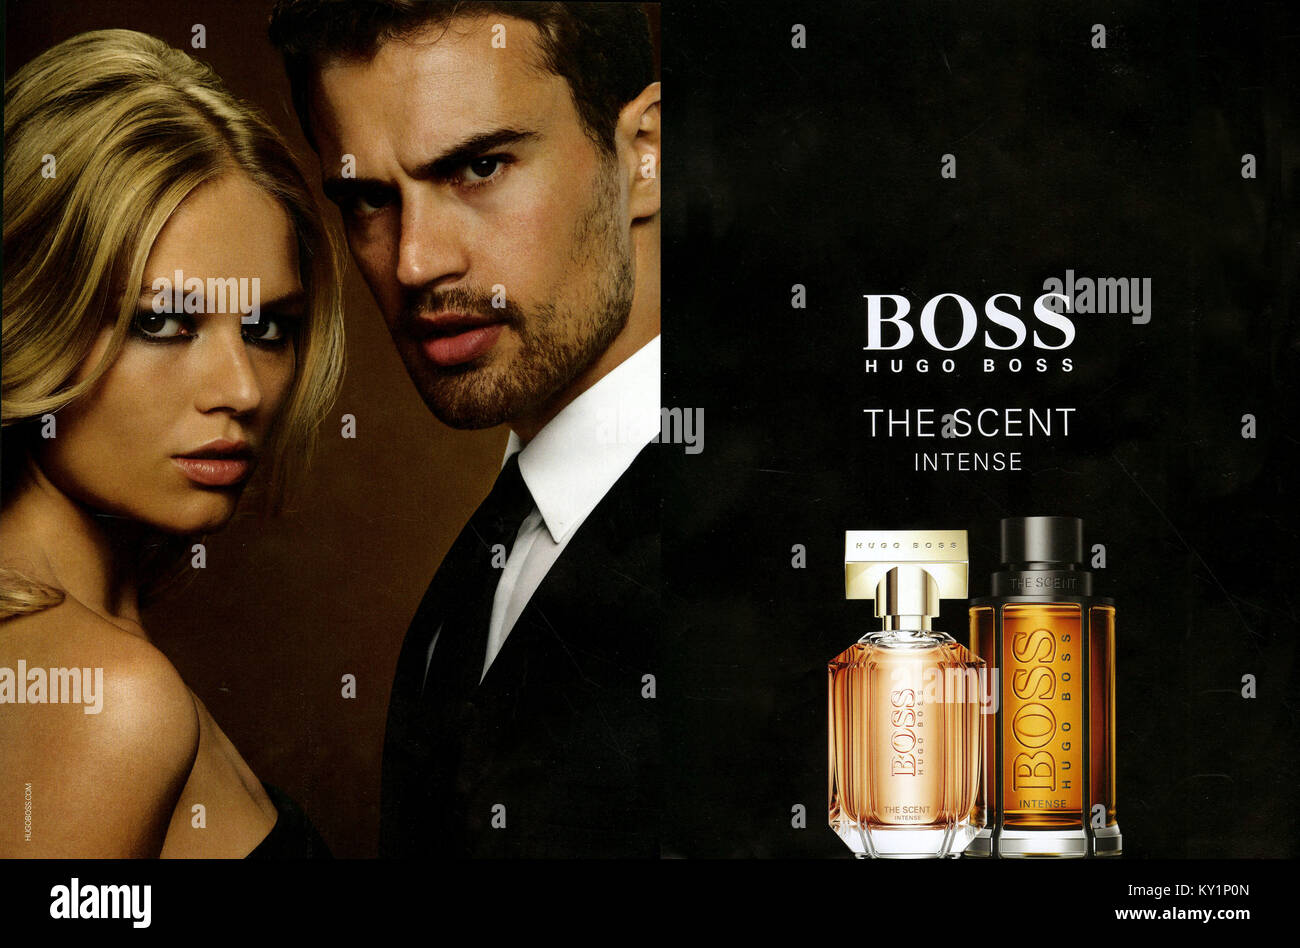 646d2ff2 Hugo Boss Perfume Stock Photos & Hugo Boss Perfume Stock Images - Alamy